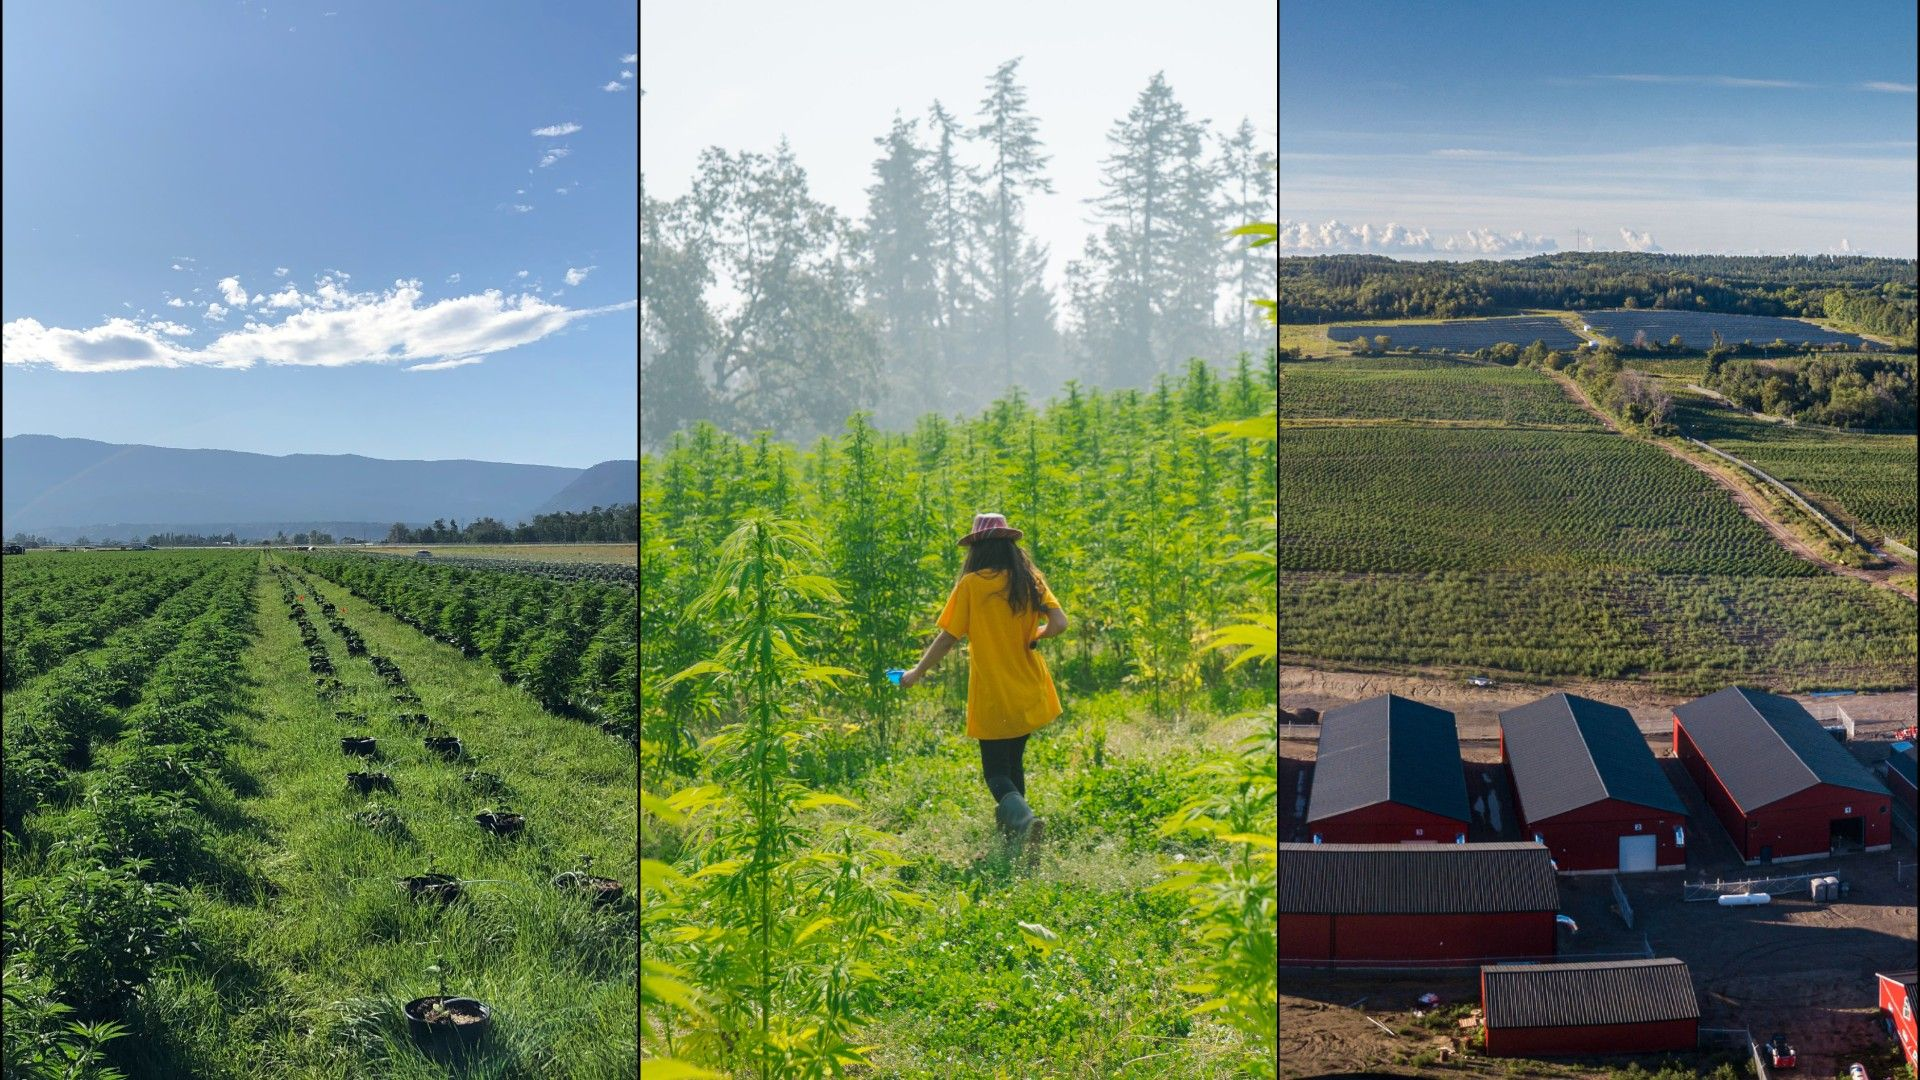 An image showing three outdoor cannabis cultivation sites in Canada.